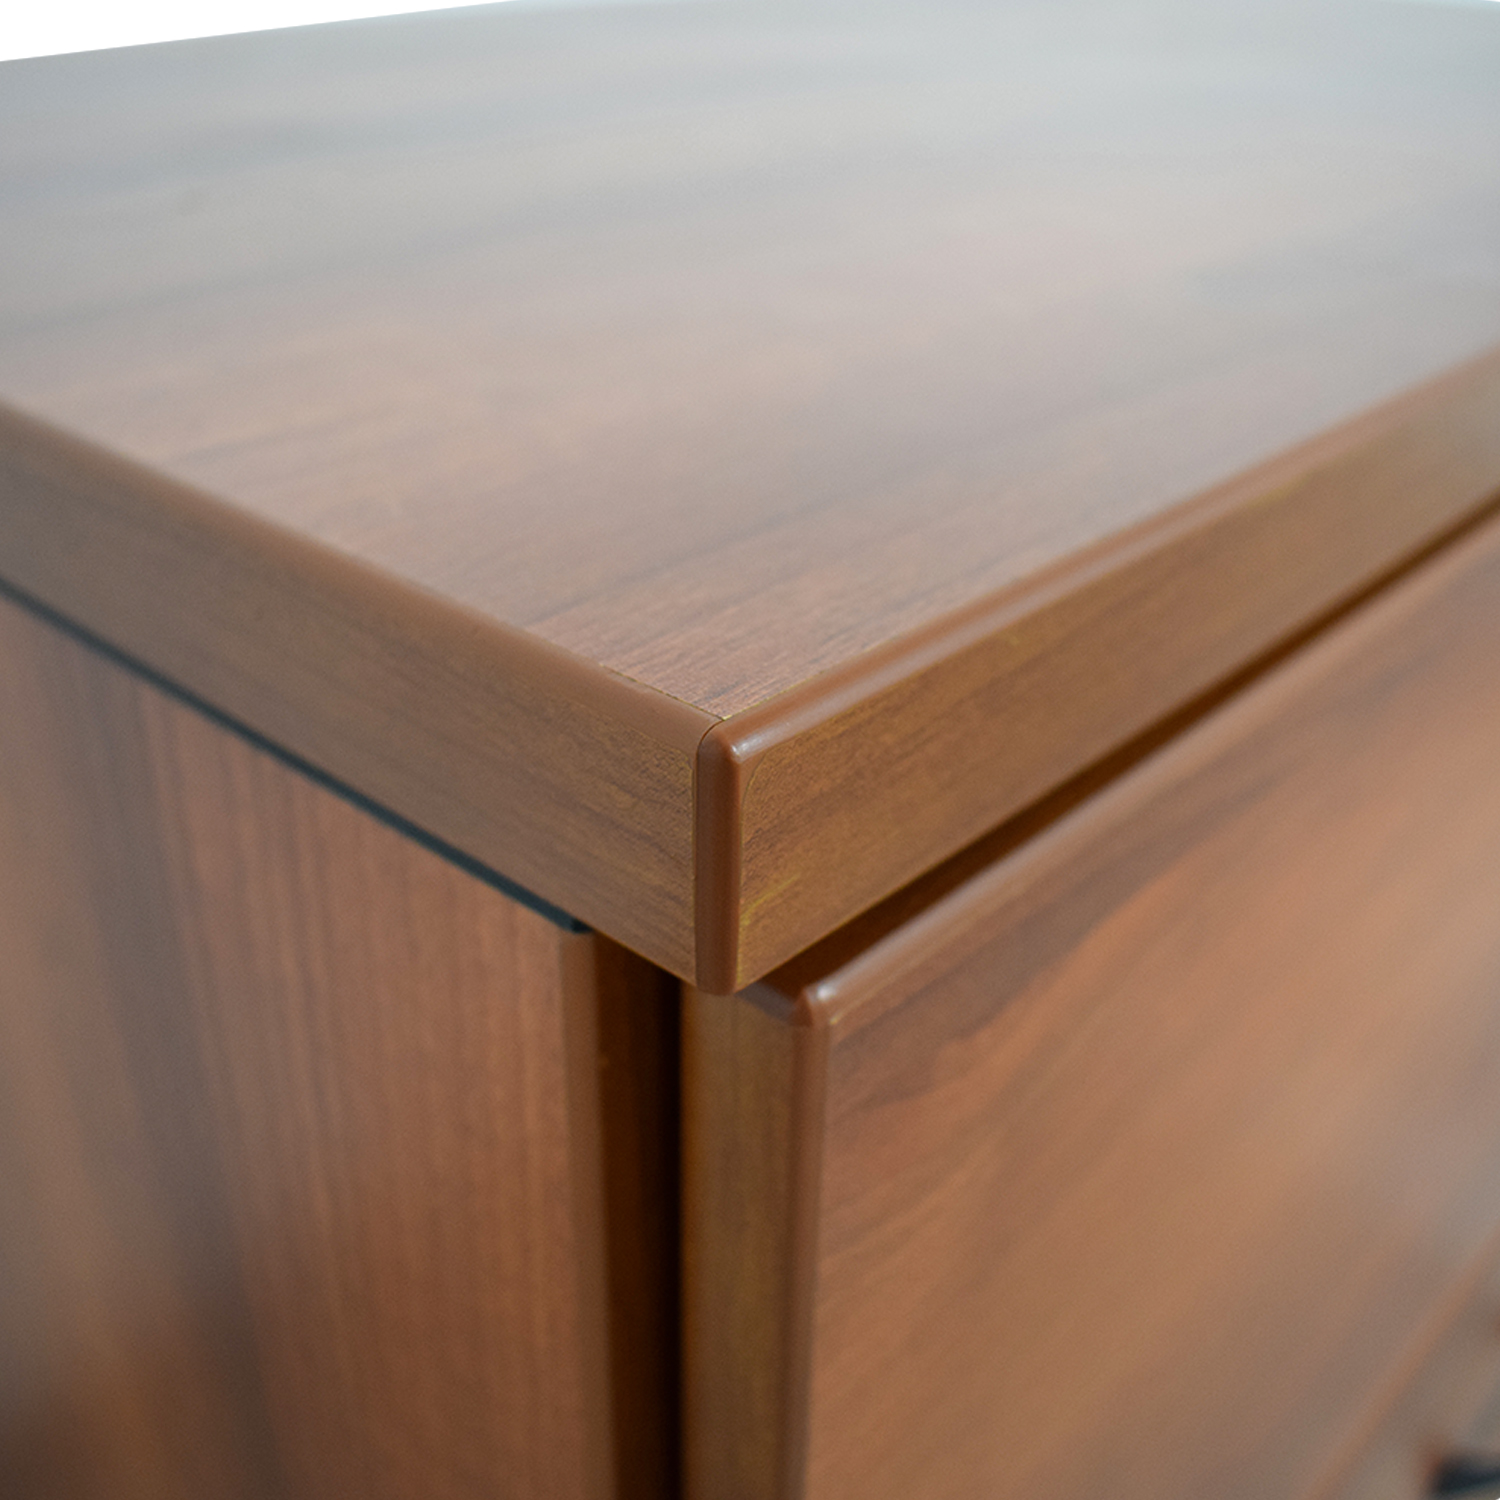 Cherry Two-Drawer Office Filing Cabinet dimensions